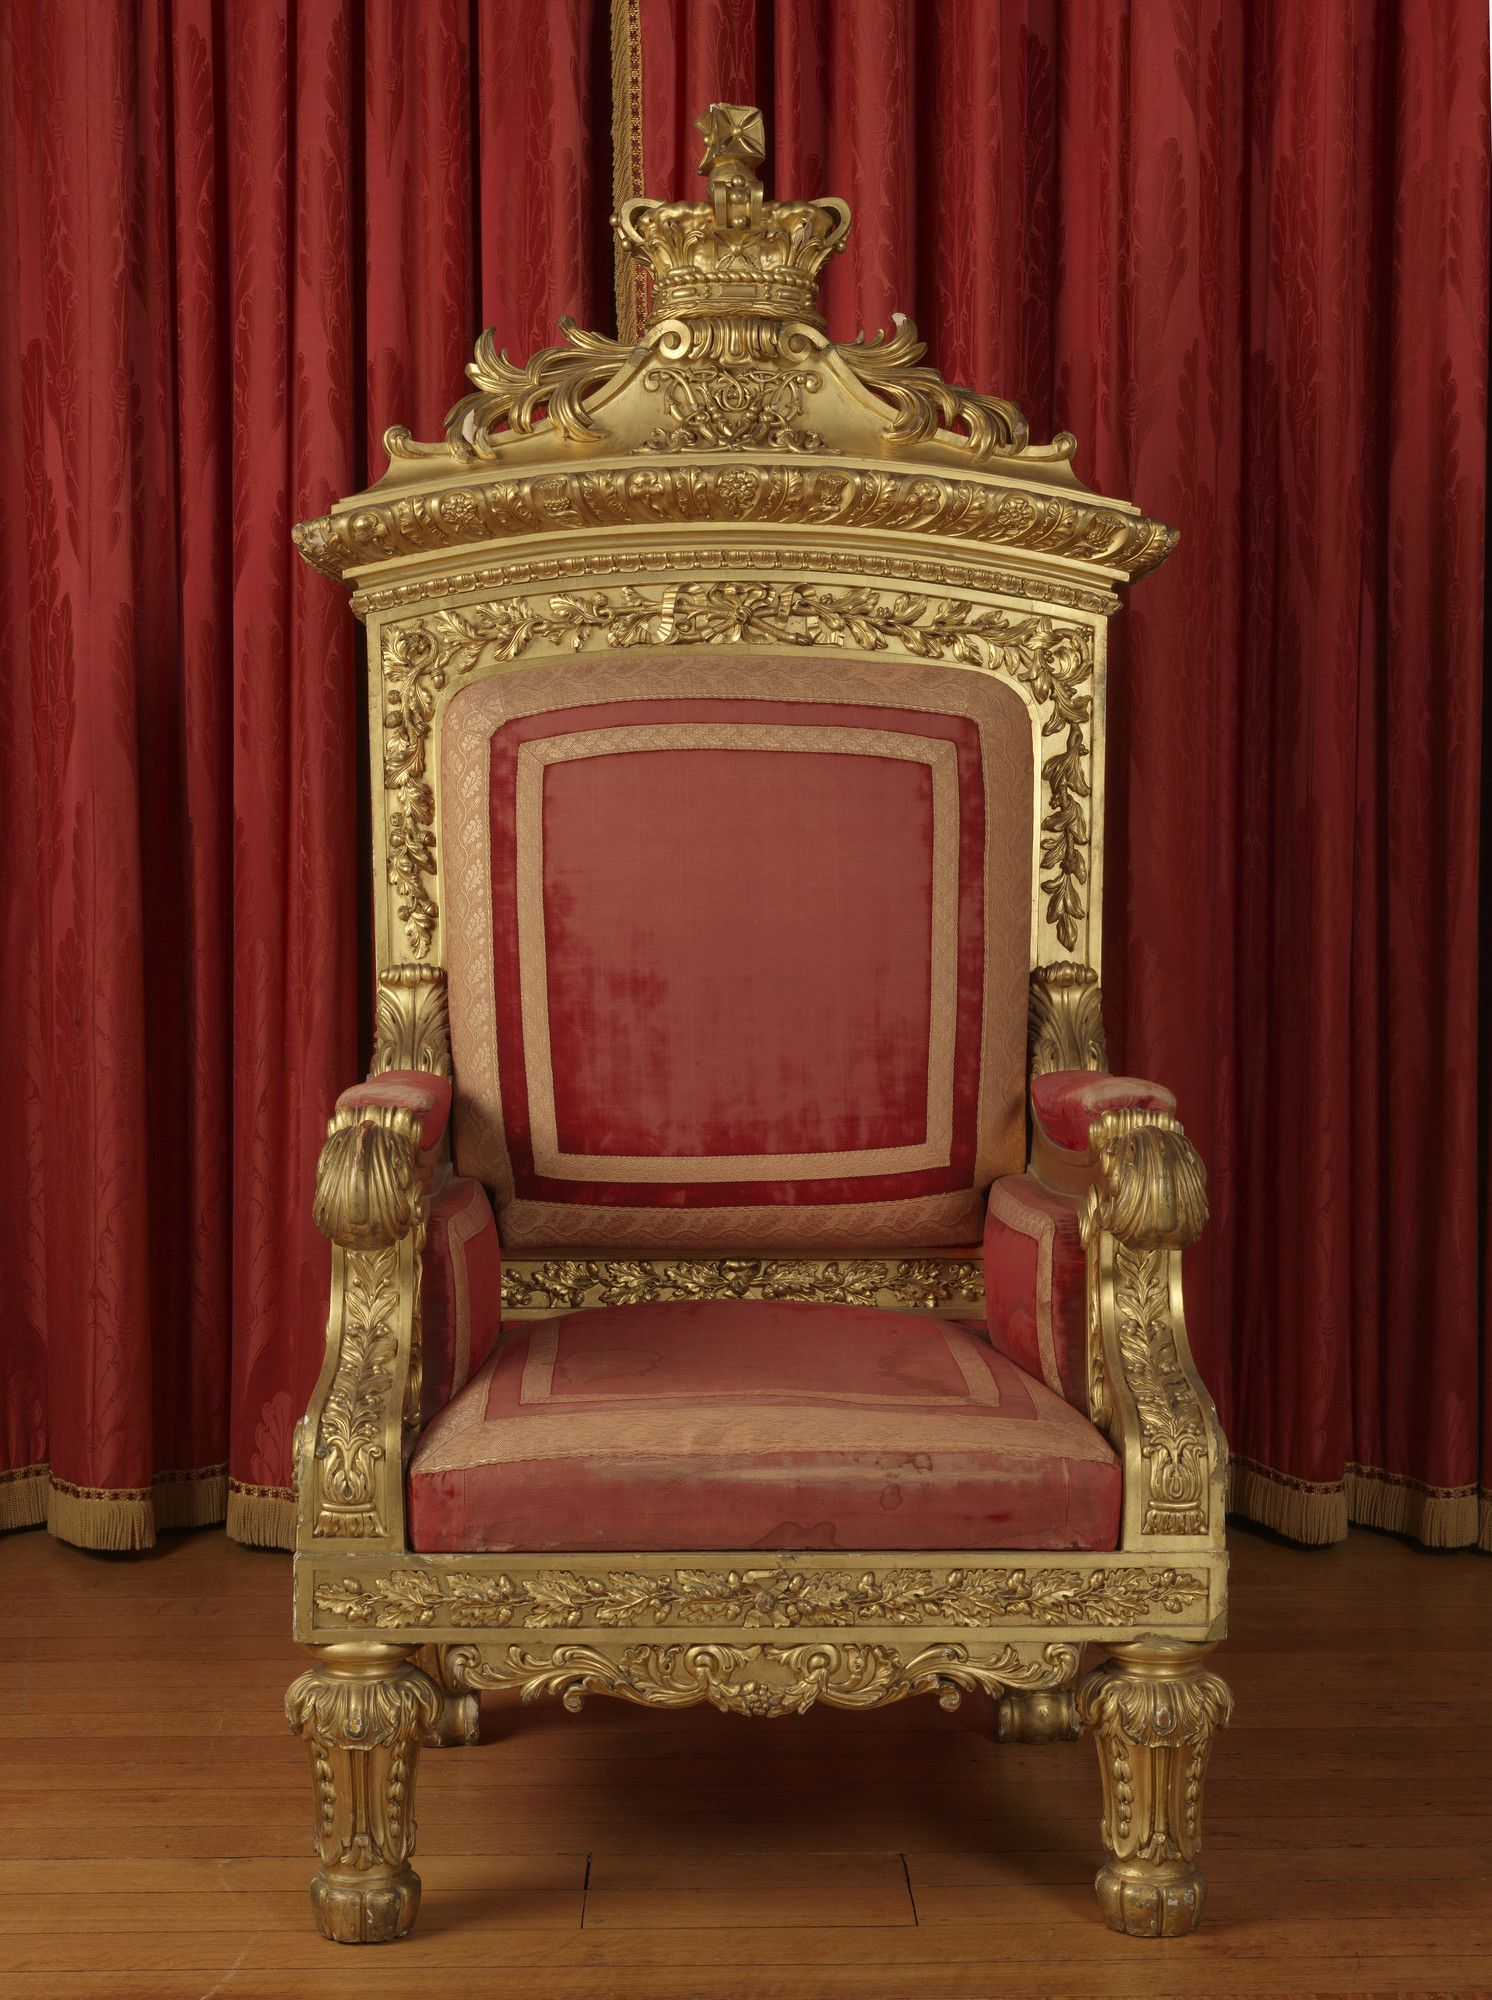 Queen Victoria S Throne Made For Her Coronation In 1837 It Now Sits In The Throne Room At Buckingham Palace Cadeiroes Moveis Classicos Art Nouveau